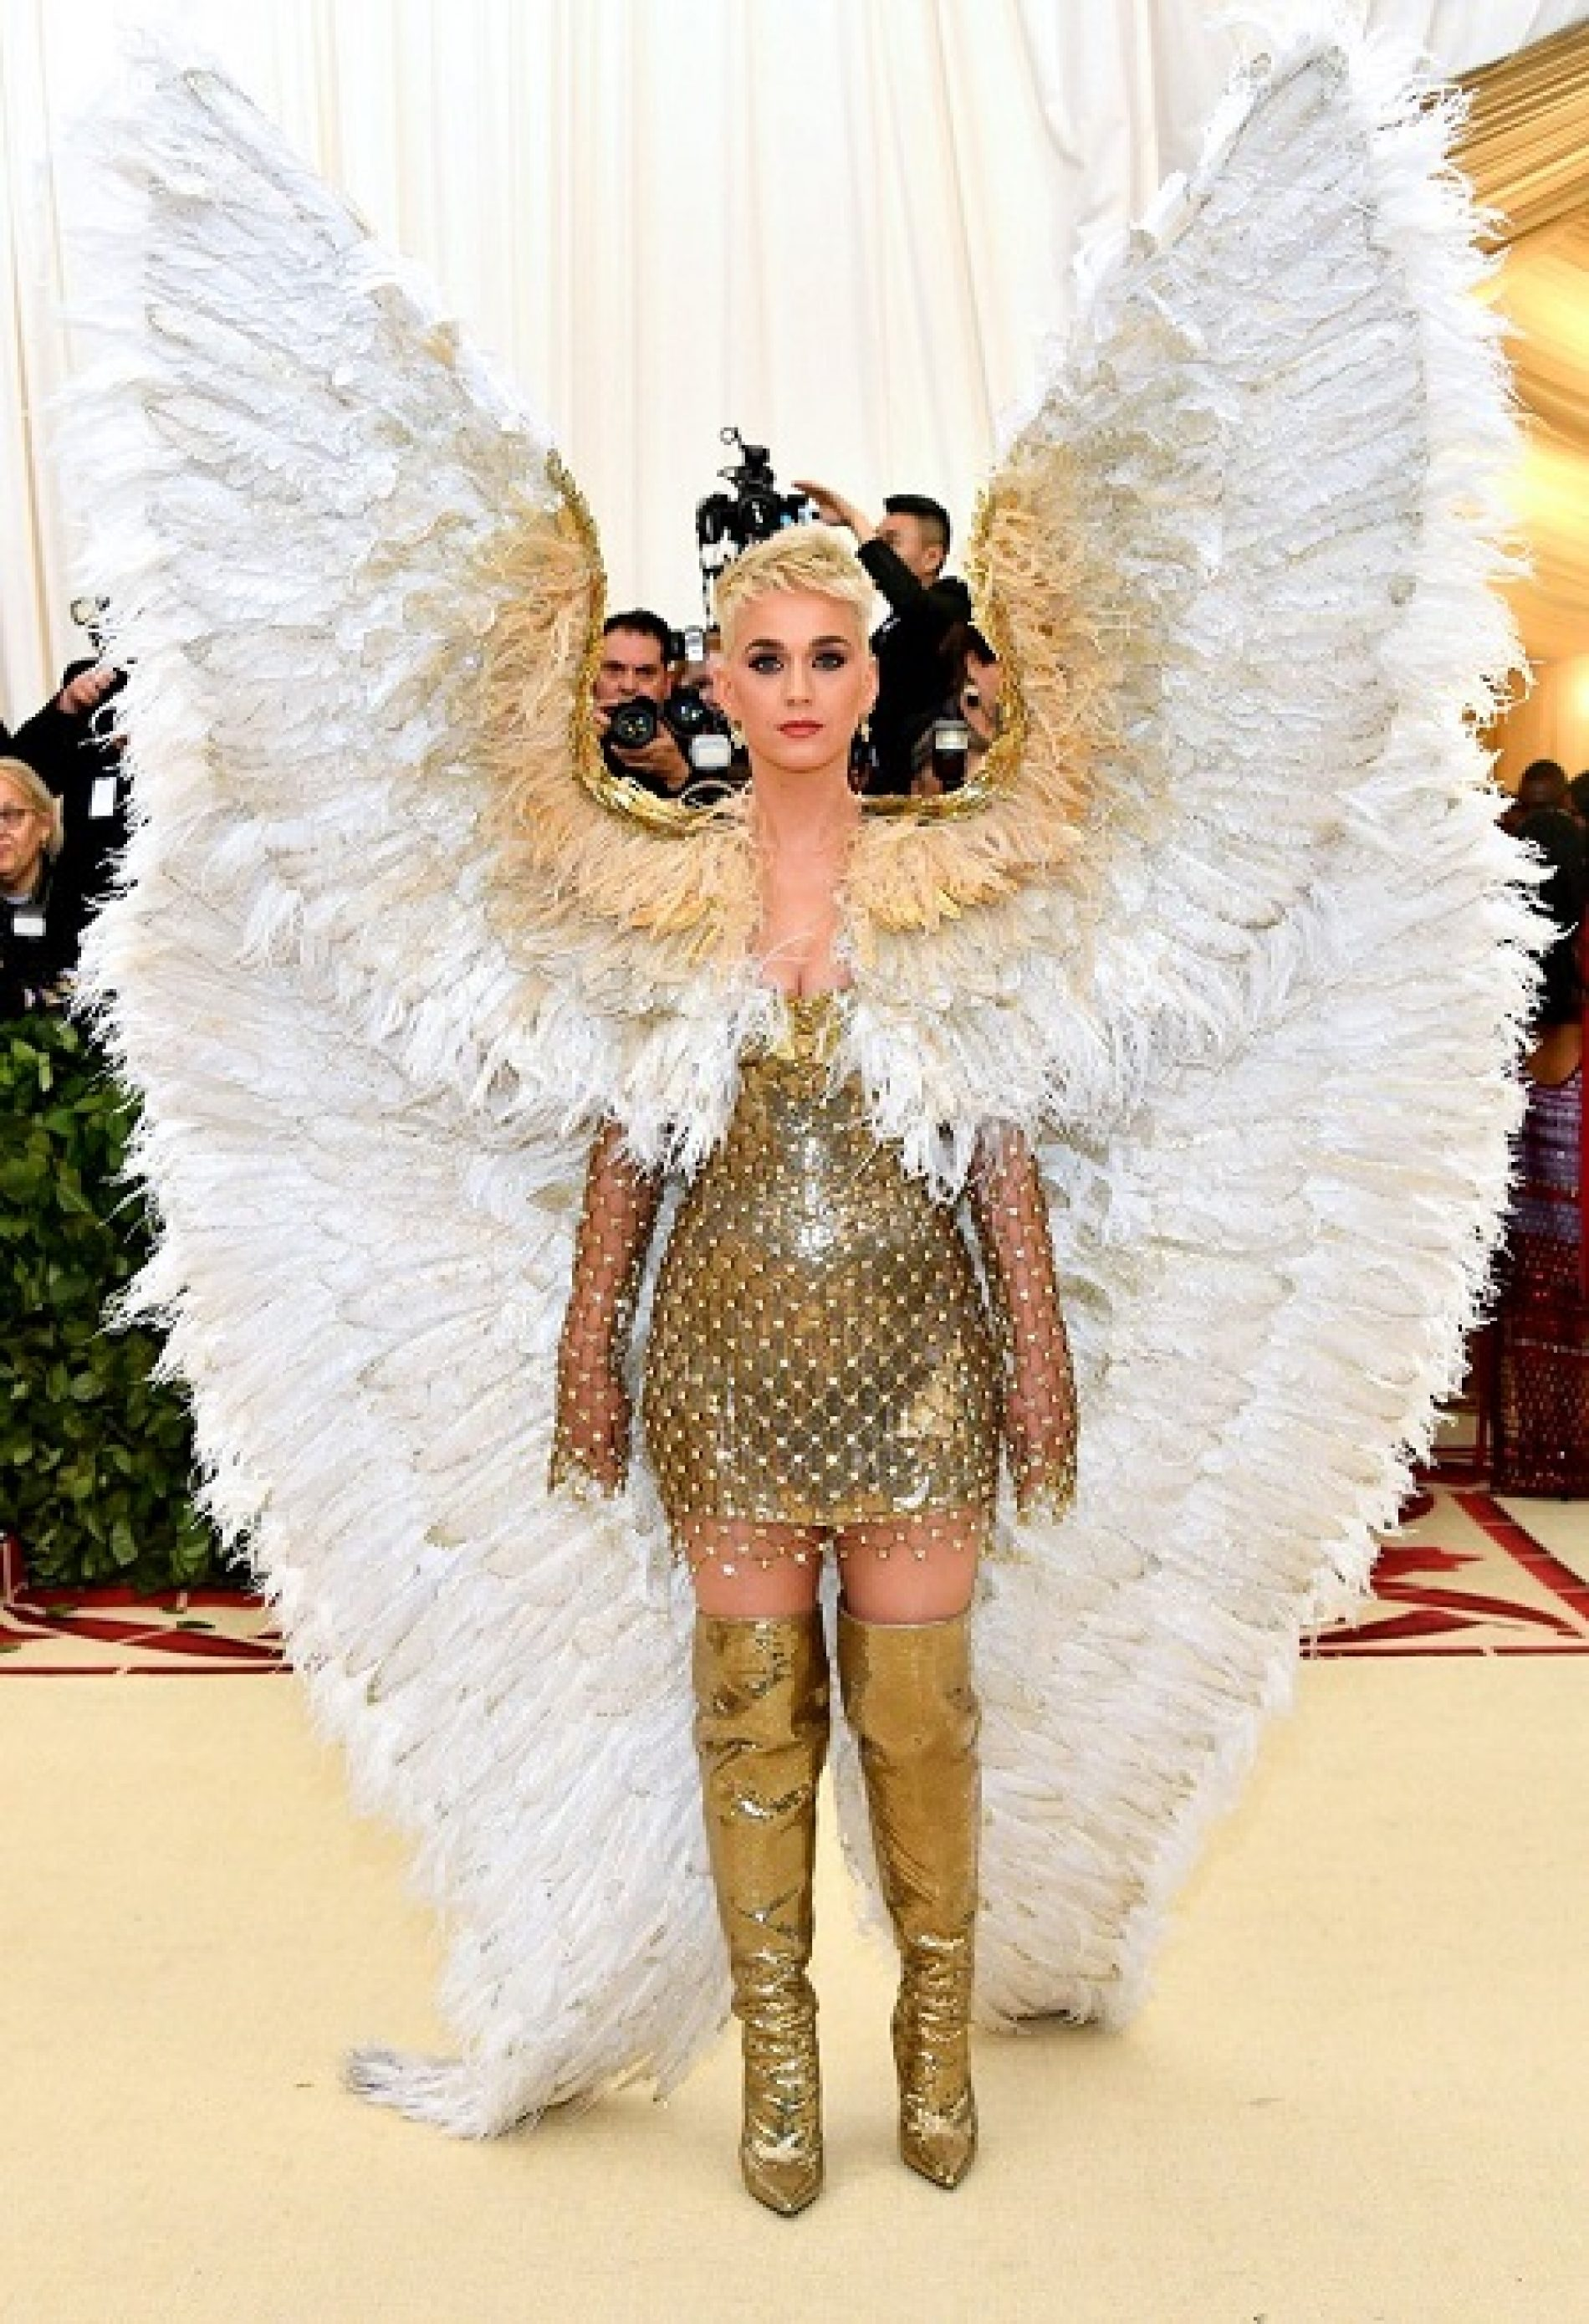 The #MetGala Story We Wish Hollywood Would Tell